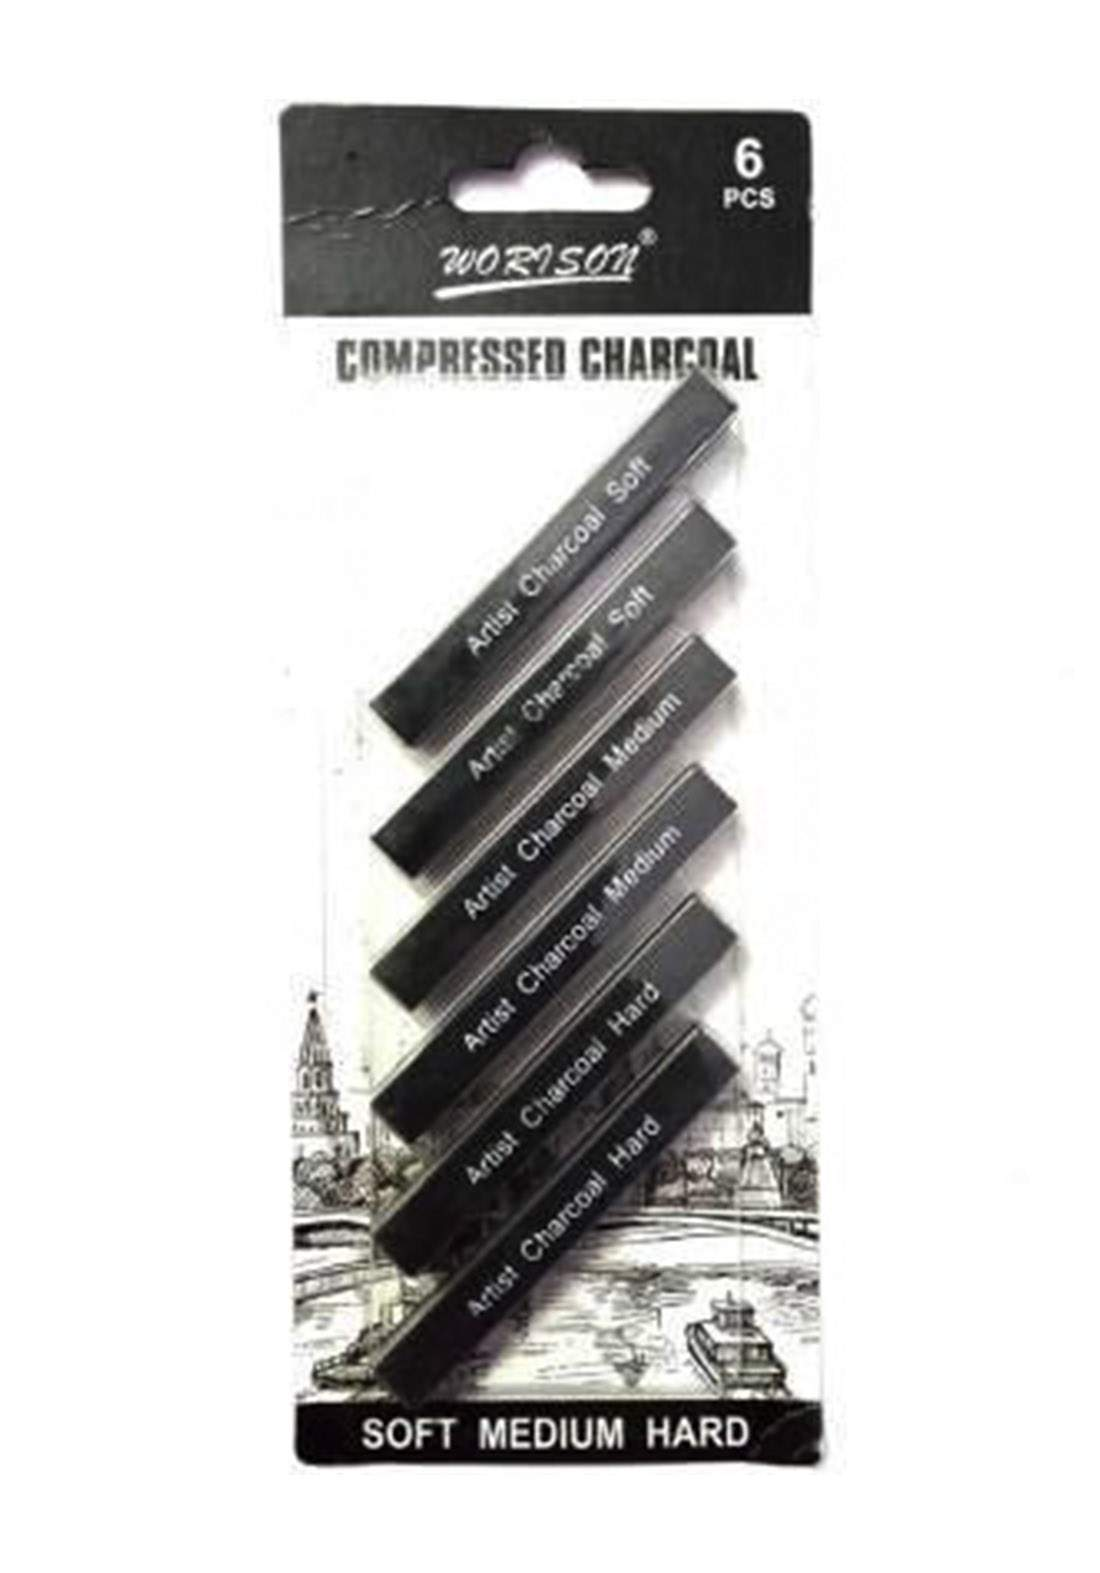 Charcoal Set 6 Pieces Black Color For Drawing سيت فحم للرسم 6 قطع اسود اللون